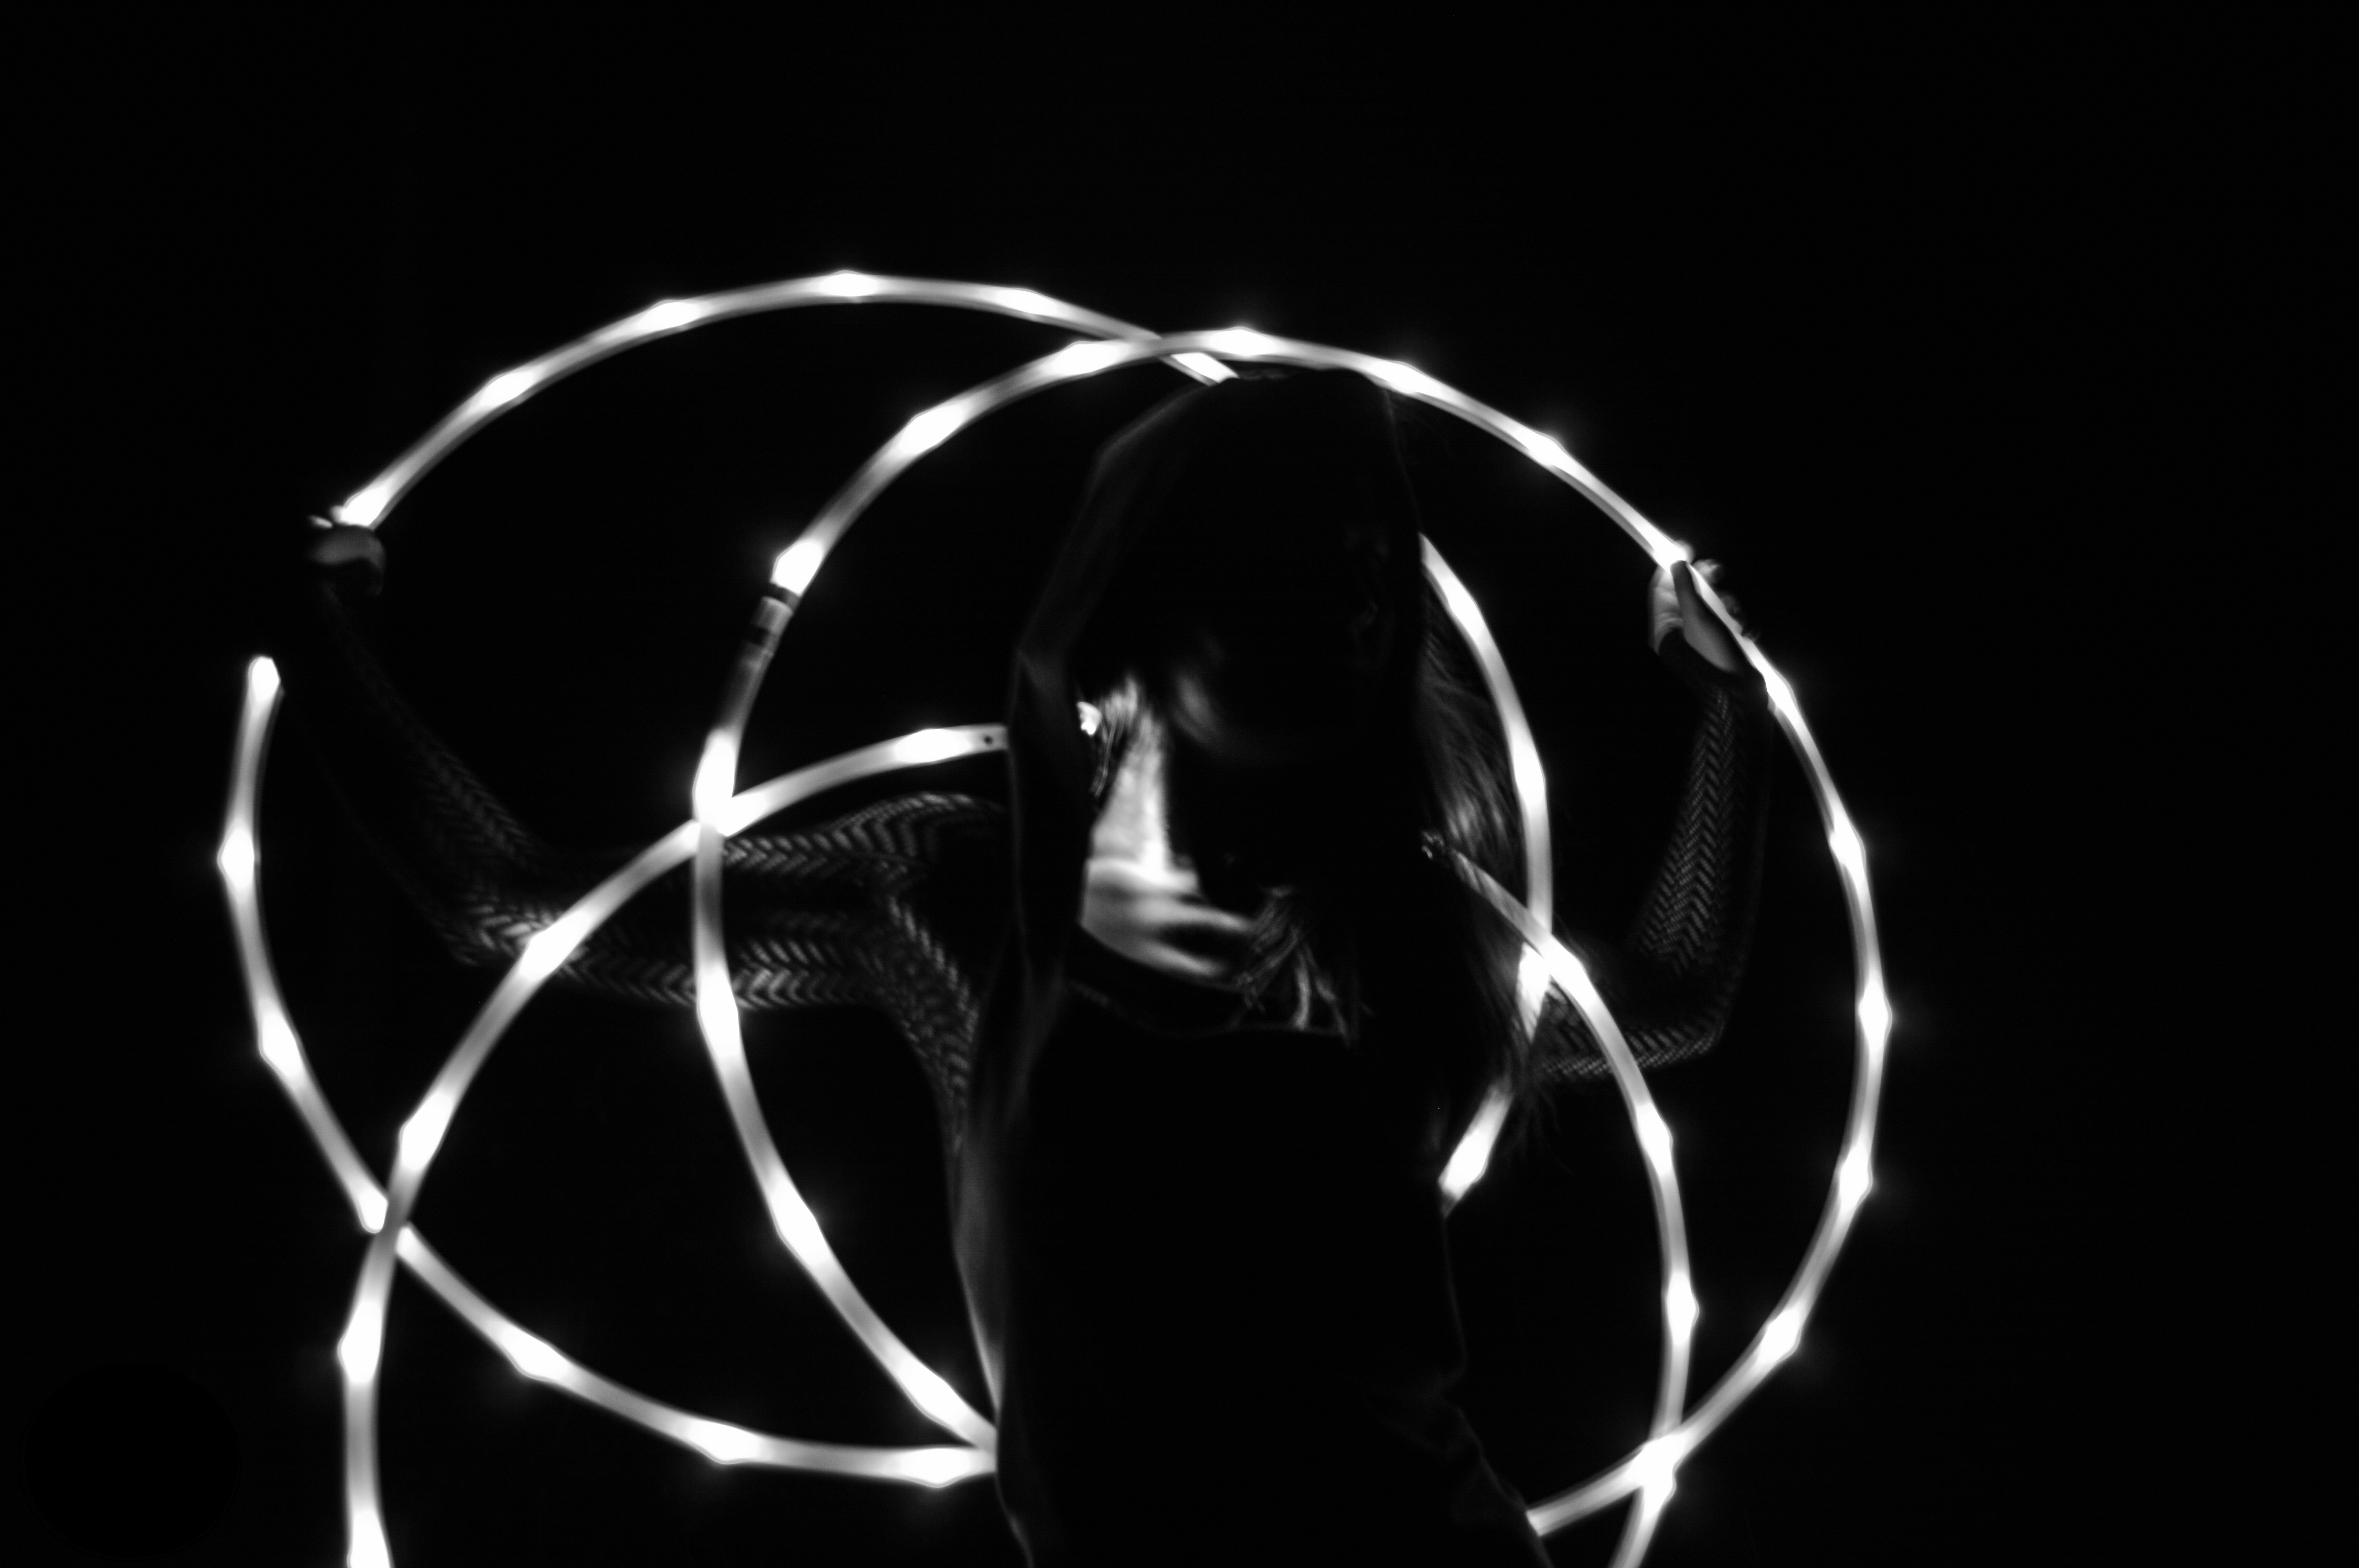 Led hulahoop show